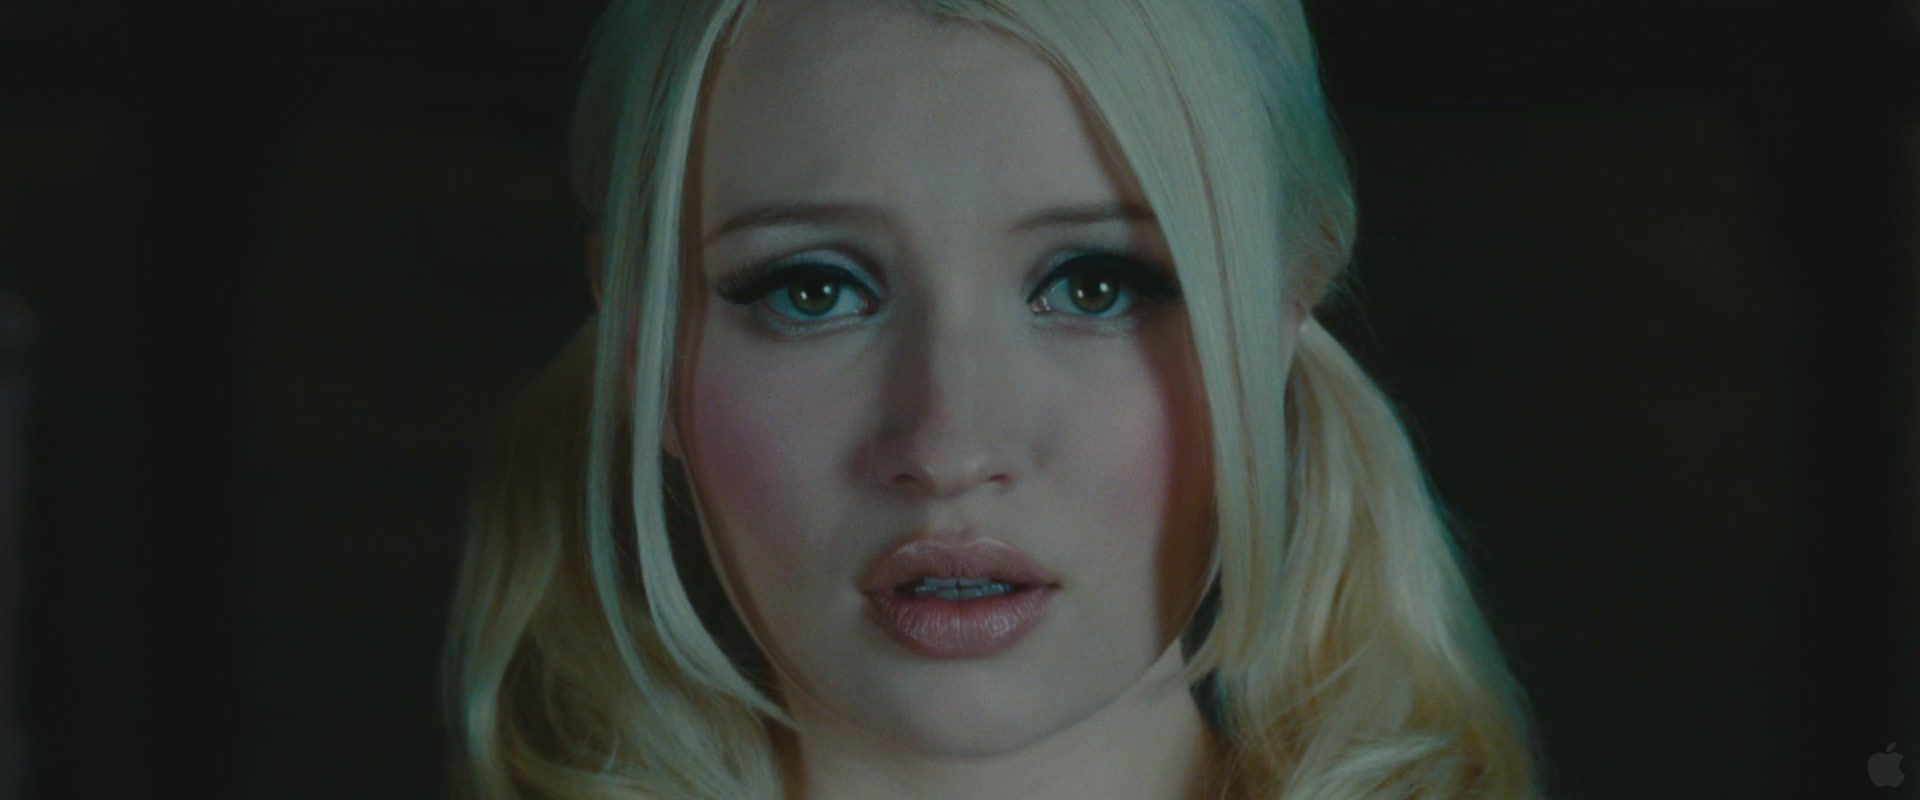 emily browning songsemily browning – sweet dreams, emily browning instagram, emily browning tumblr, emily browning фильмы, emily browning sweet dreams mp3, emily browning 2016, emily browning sweet dreams рингтон, emily browning - sweet dreams lyrics, emily browning -, emily browning 2017, emily browning asleep, emily browning песни, emily browning 2014, emily browning films, emily browning wiki, emily browning listal, emily browning close enough to kill, emily browning asleep перевод, emily browning songs, emily browning фото